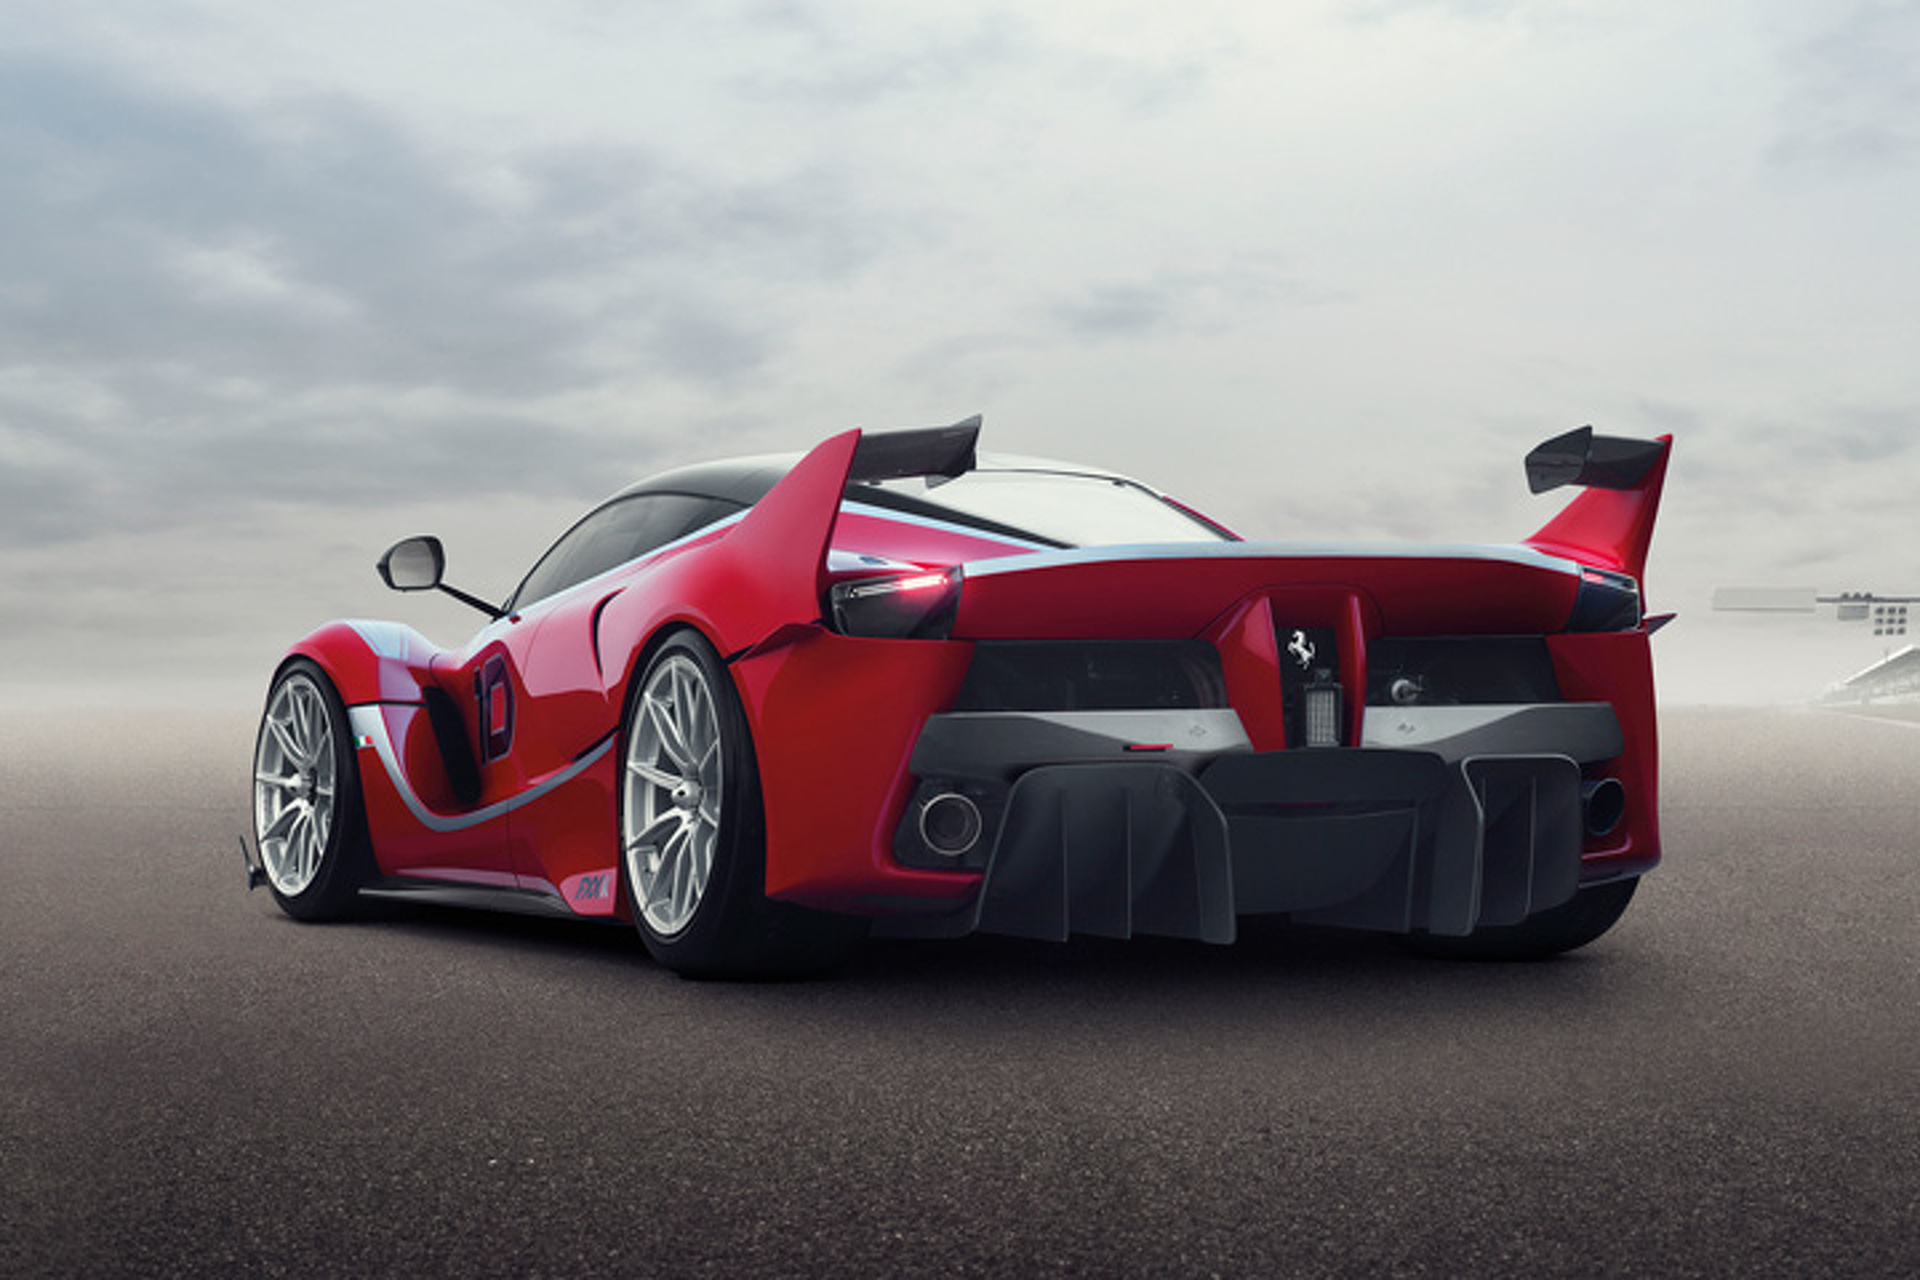 Ferrari FXX K or McLaren P1 GTR: Which Is More Extreme?